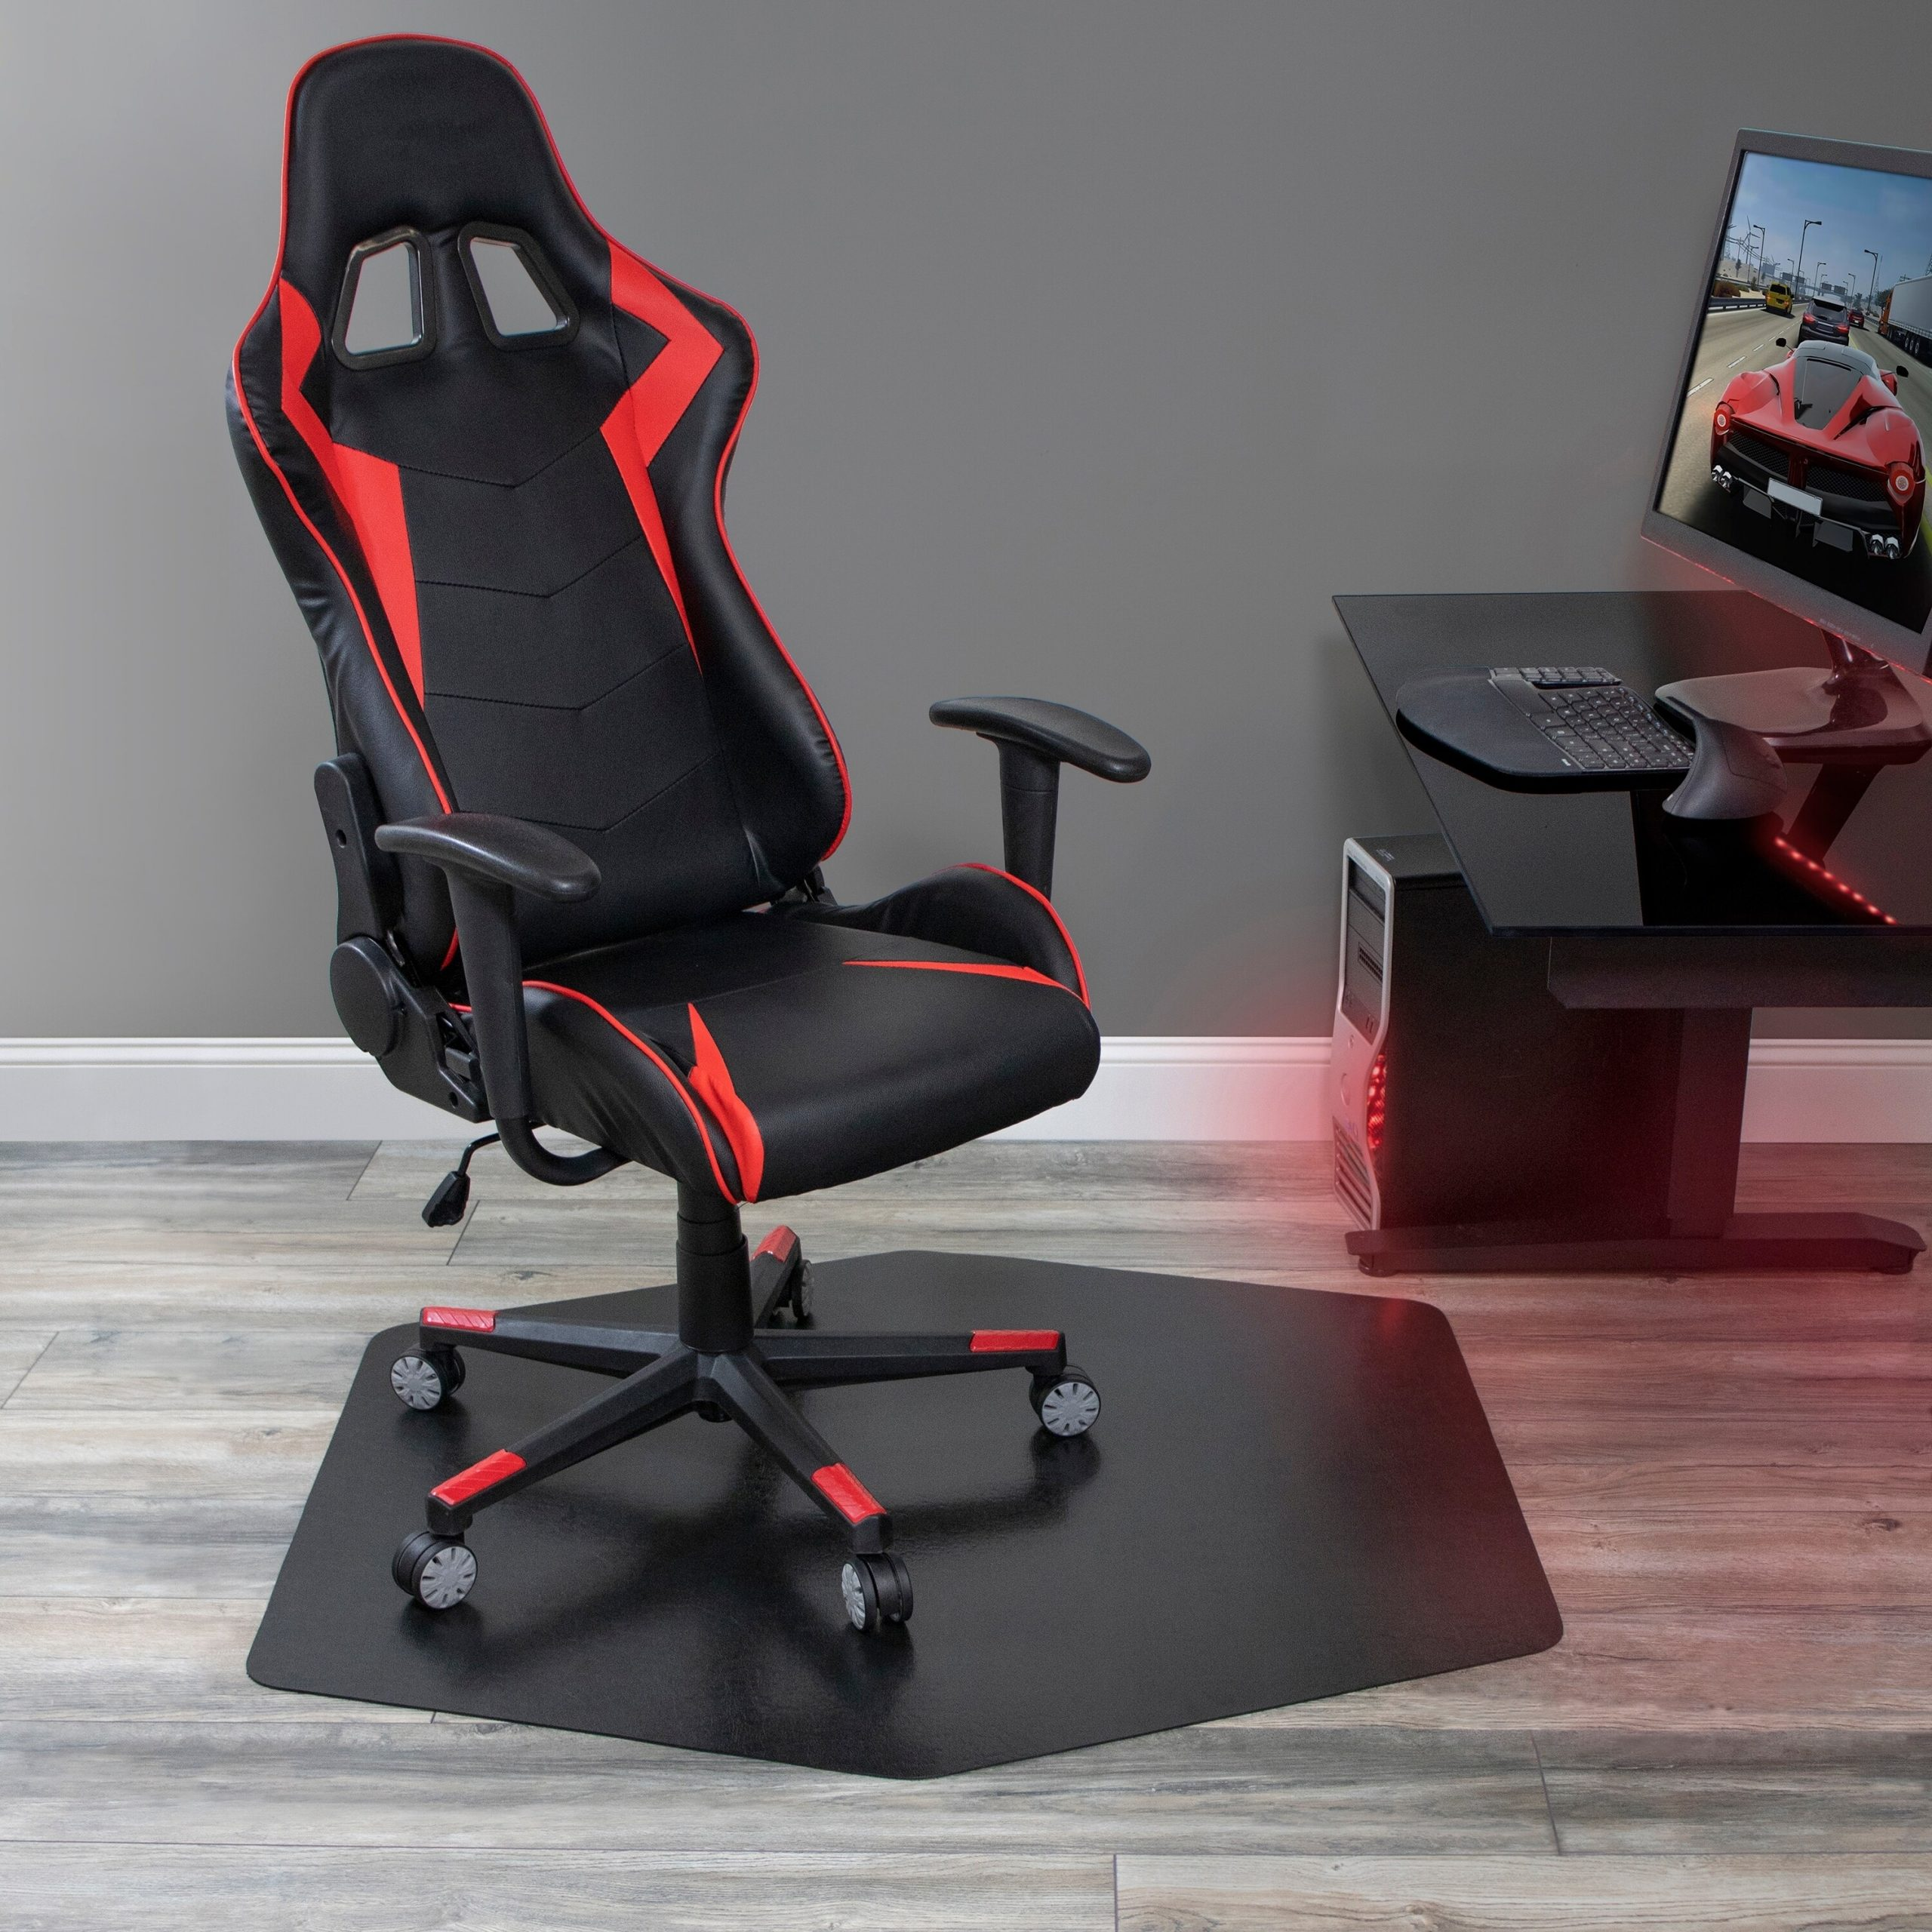 floor mats for office chairs on carpet